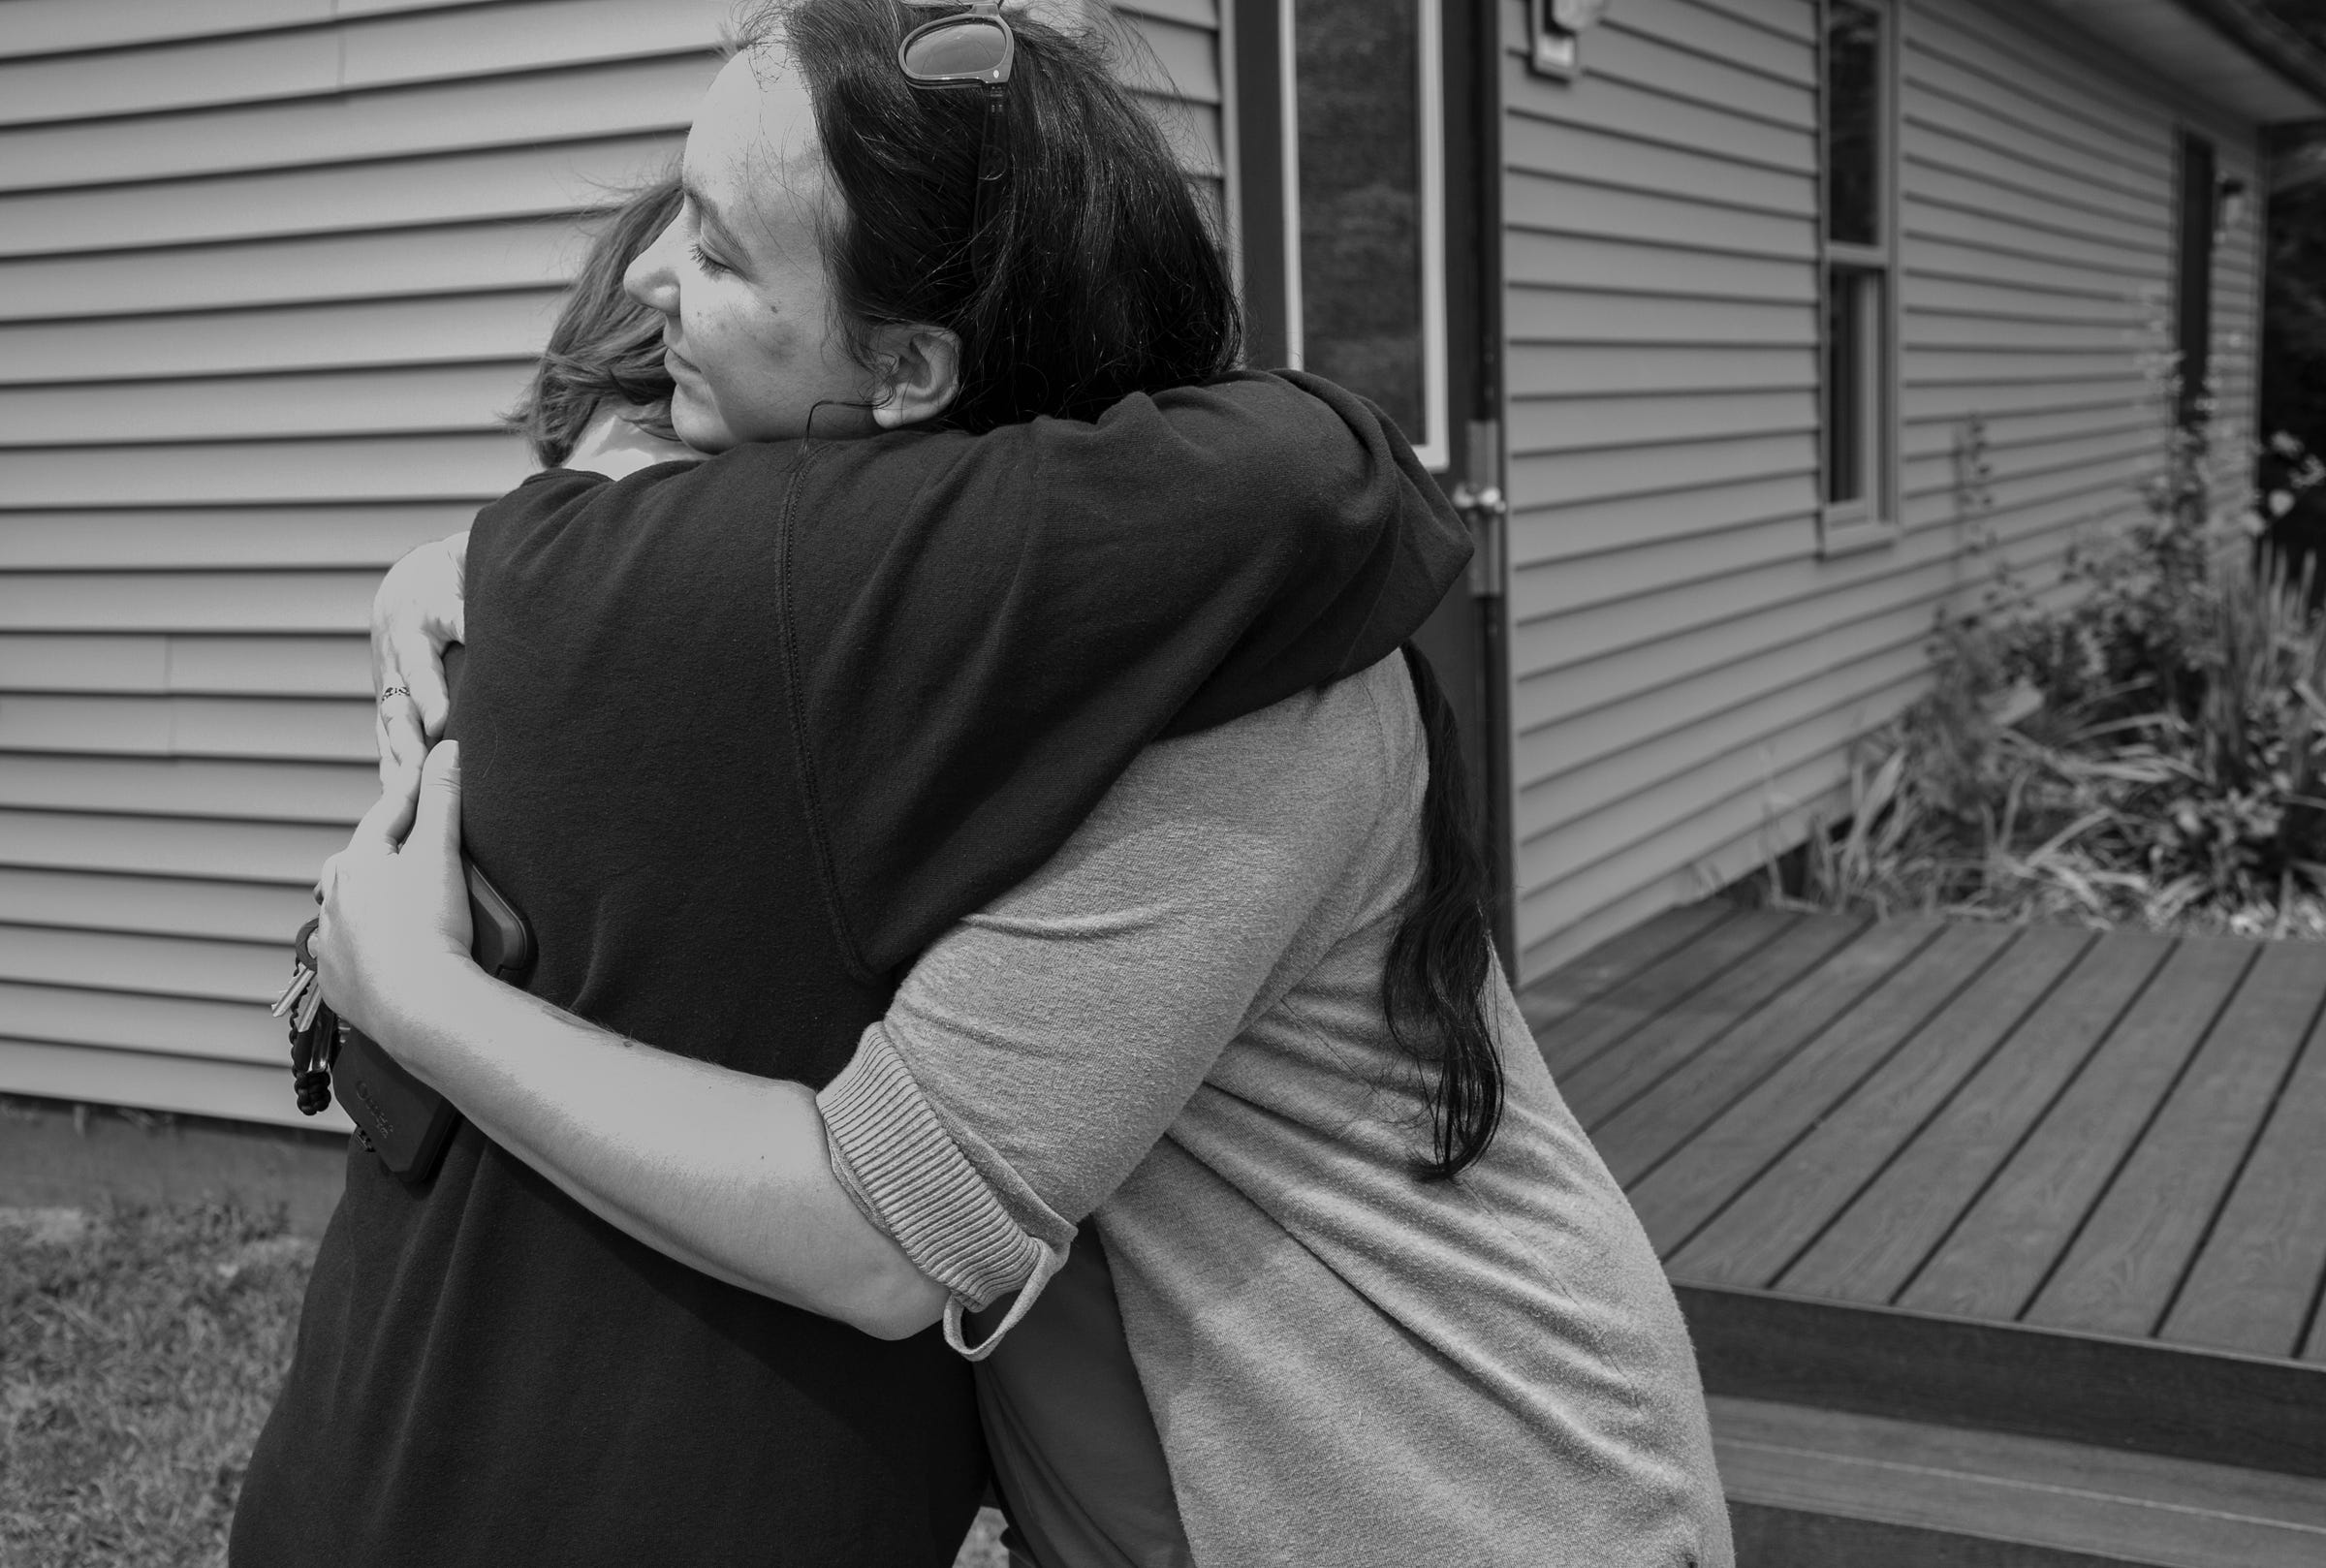 The girl from Taylor, left, hugs her therapist Rebecca Lutz at Wolverine Growth and Recovery Center in Vassar Monday, Aug. 26, 2019. The girl was court ordered to this facility which is part juvenile detention center and part residential drug rehabilitation.